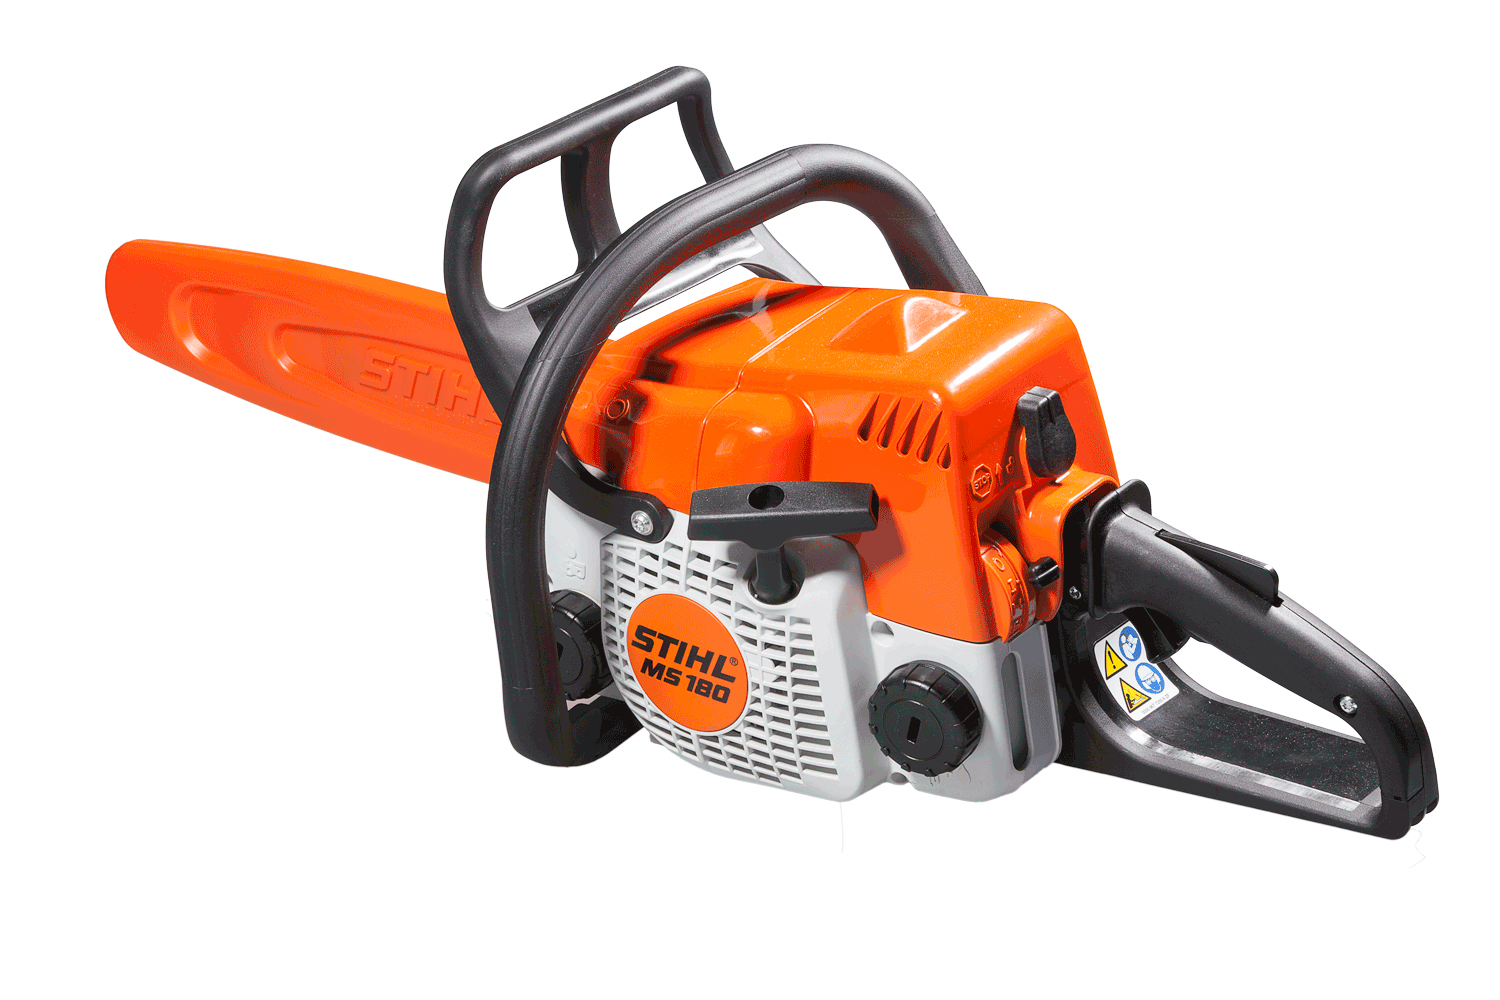 Stihl-[9623], Strainrite, Robertson, Engineering, product, photography